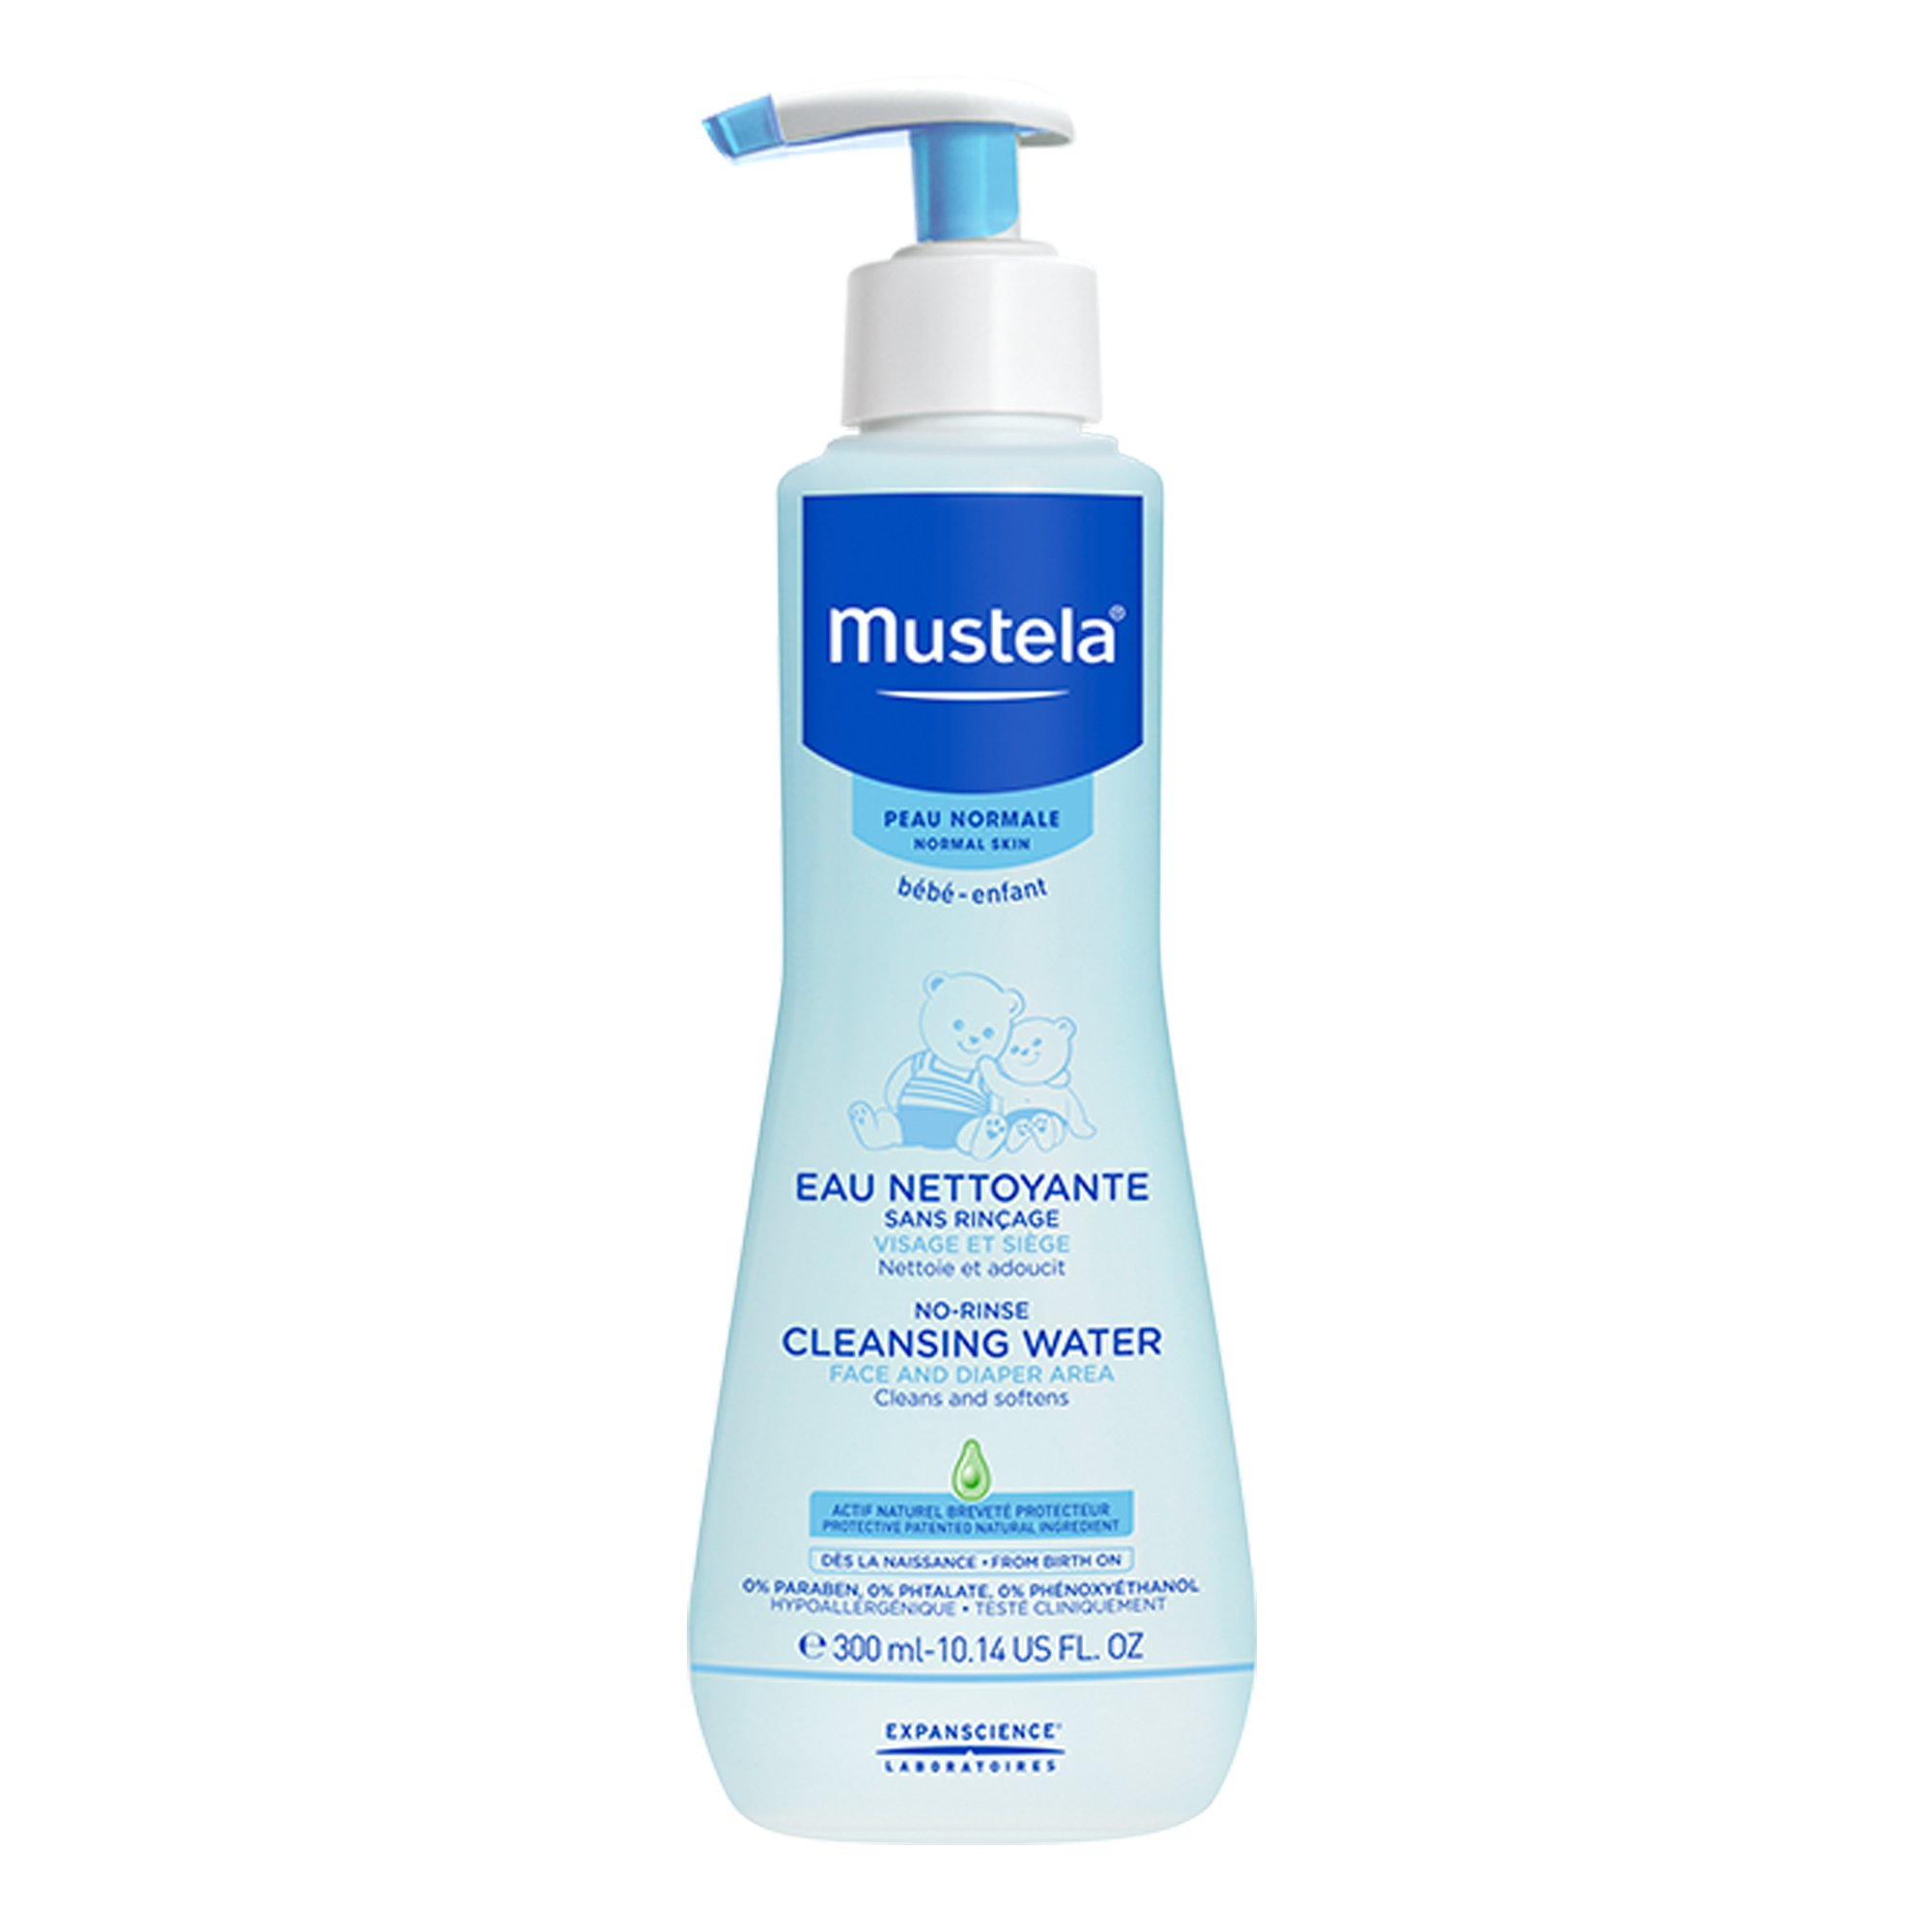 Mustela No Rinse Cleansing Water, Gentle Micellar Water for Baby, with Natural Avocado Perseose